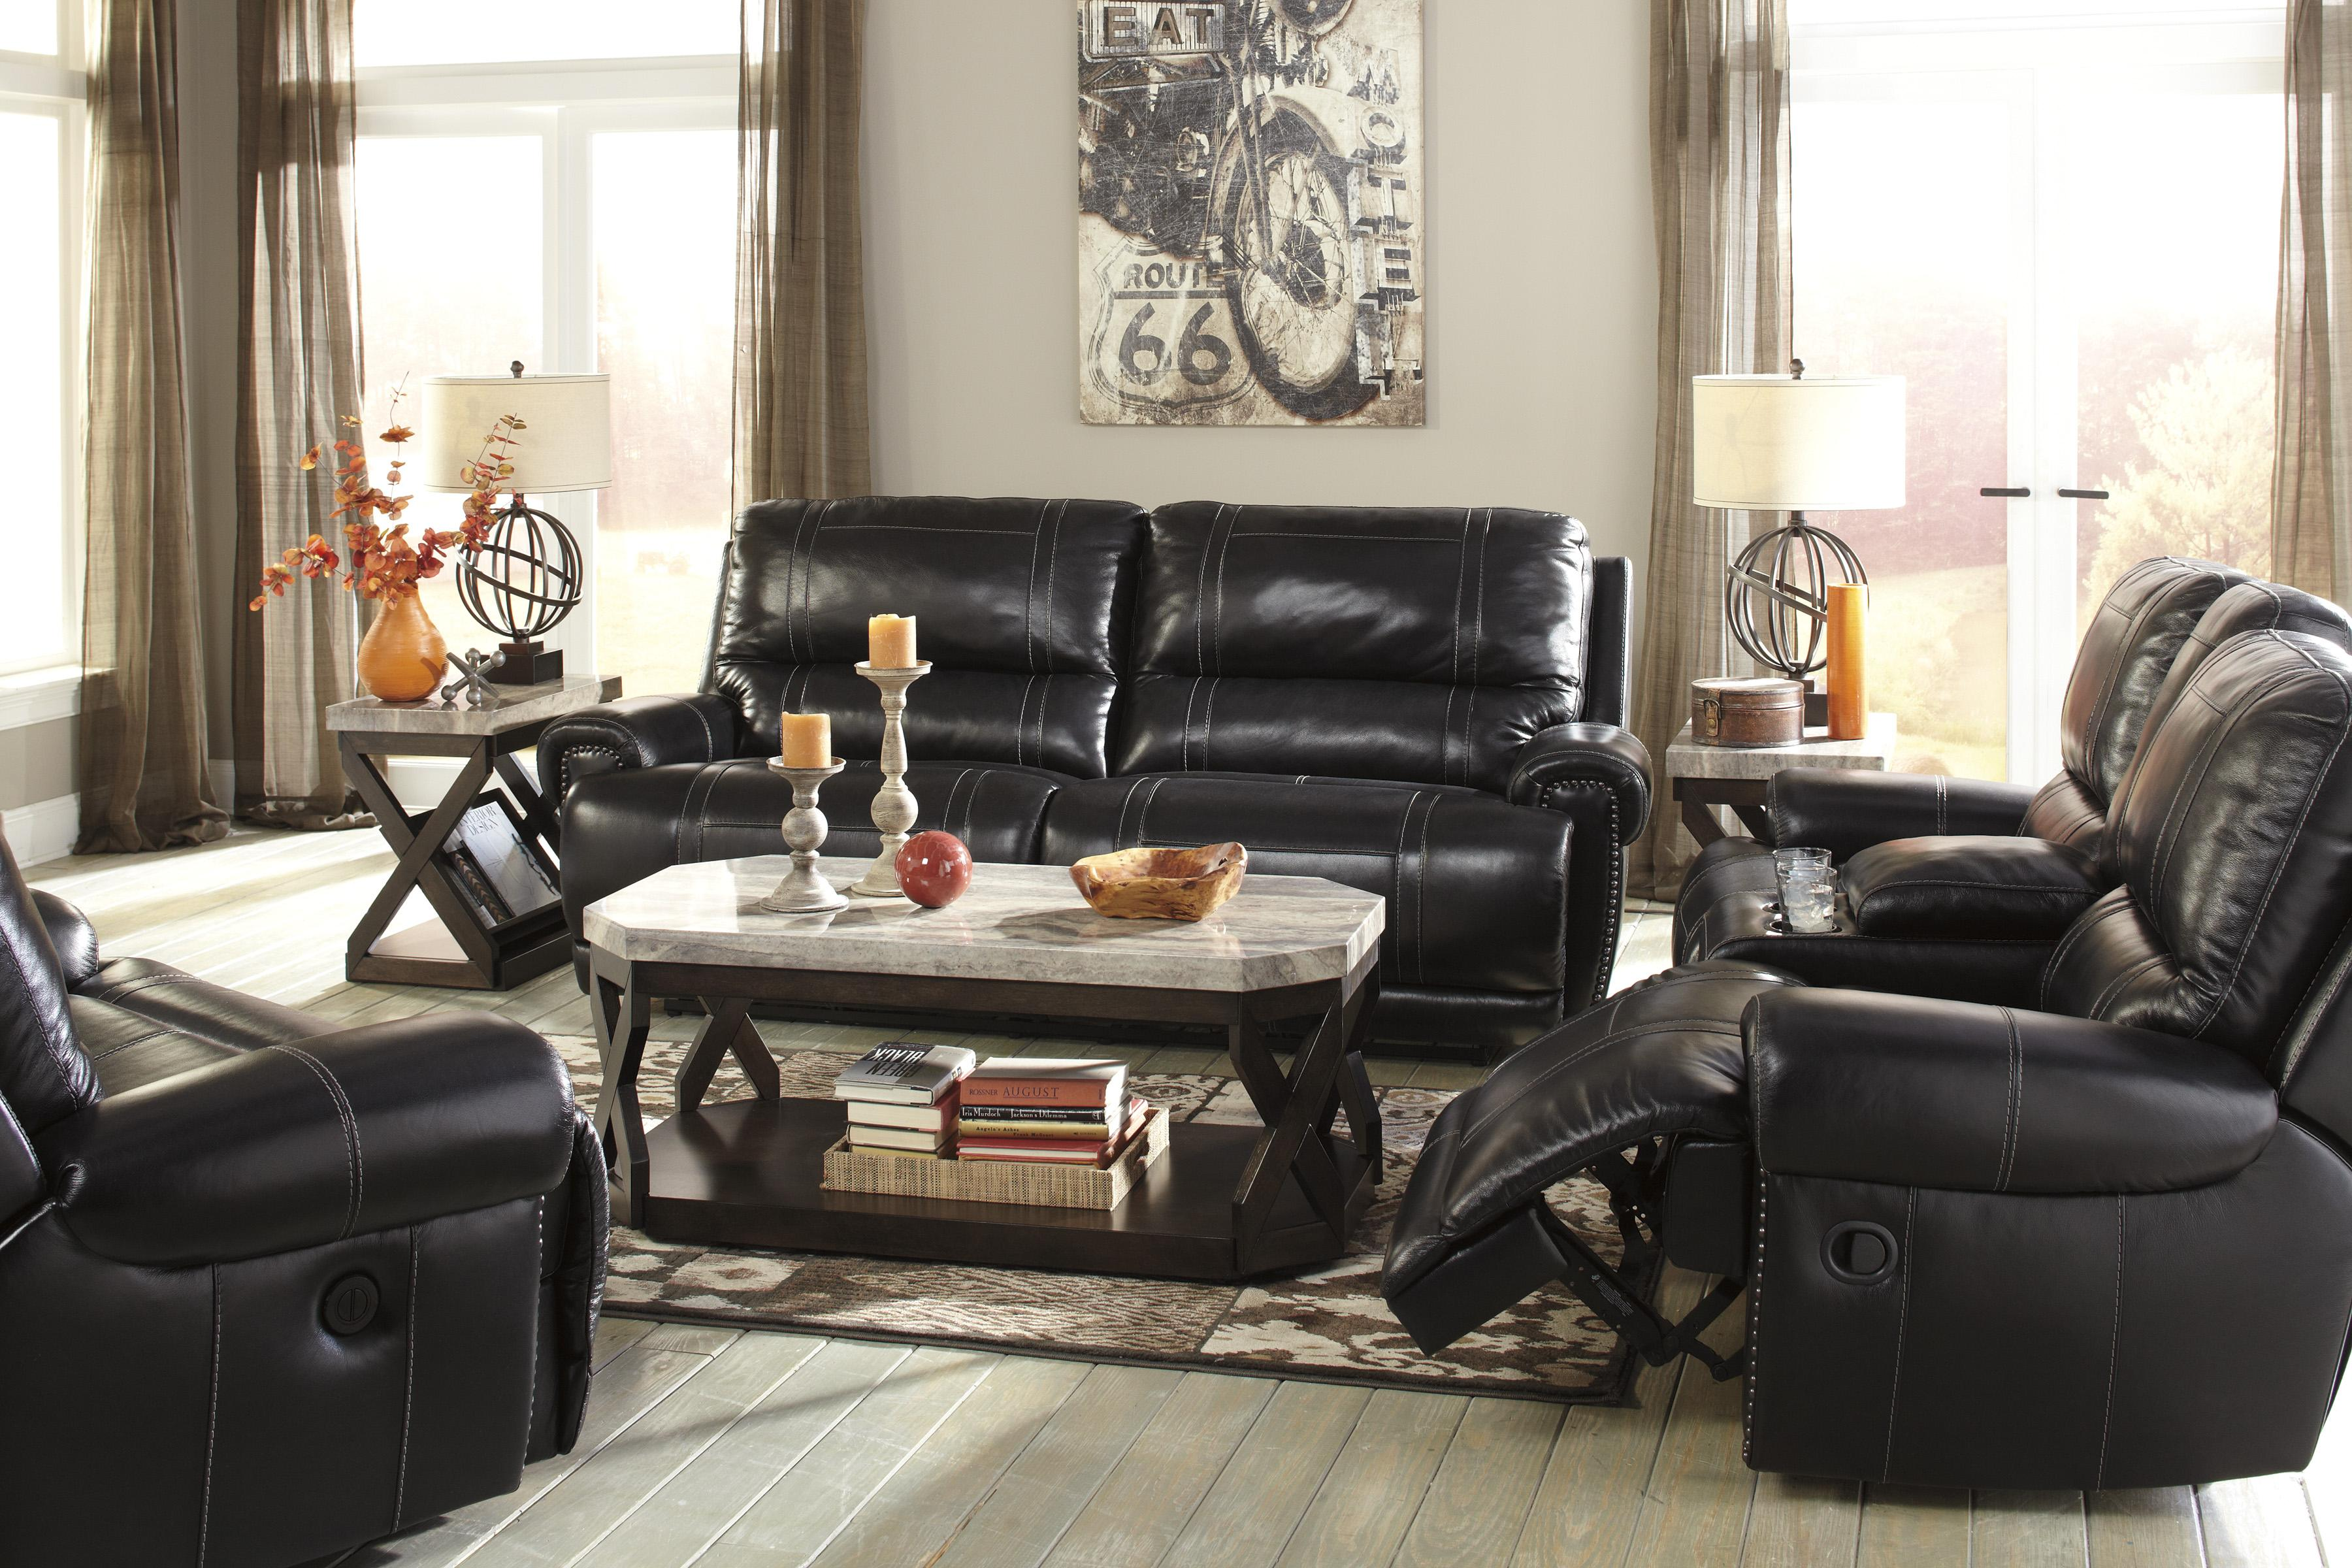 Signature Design by Ashley Paron - Antique Power Reclining Living Room Group - Item Number: U75901 Power Living Room Group 3